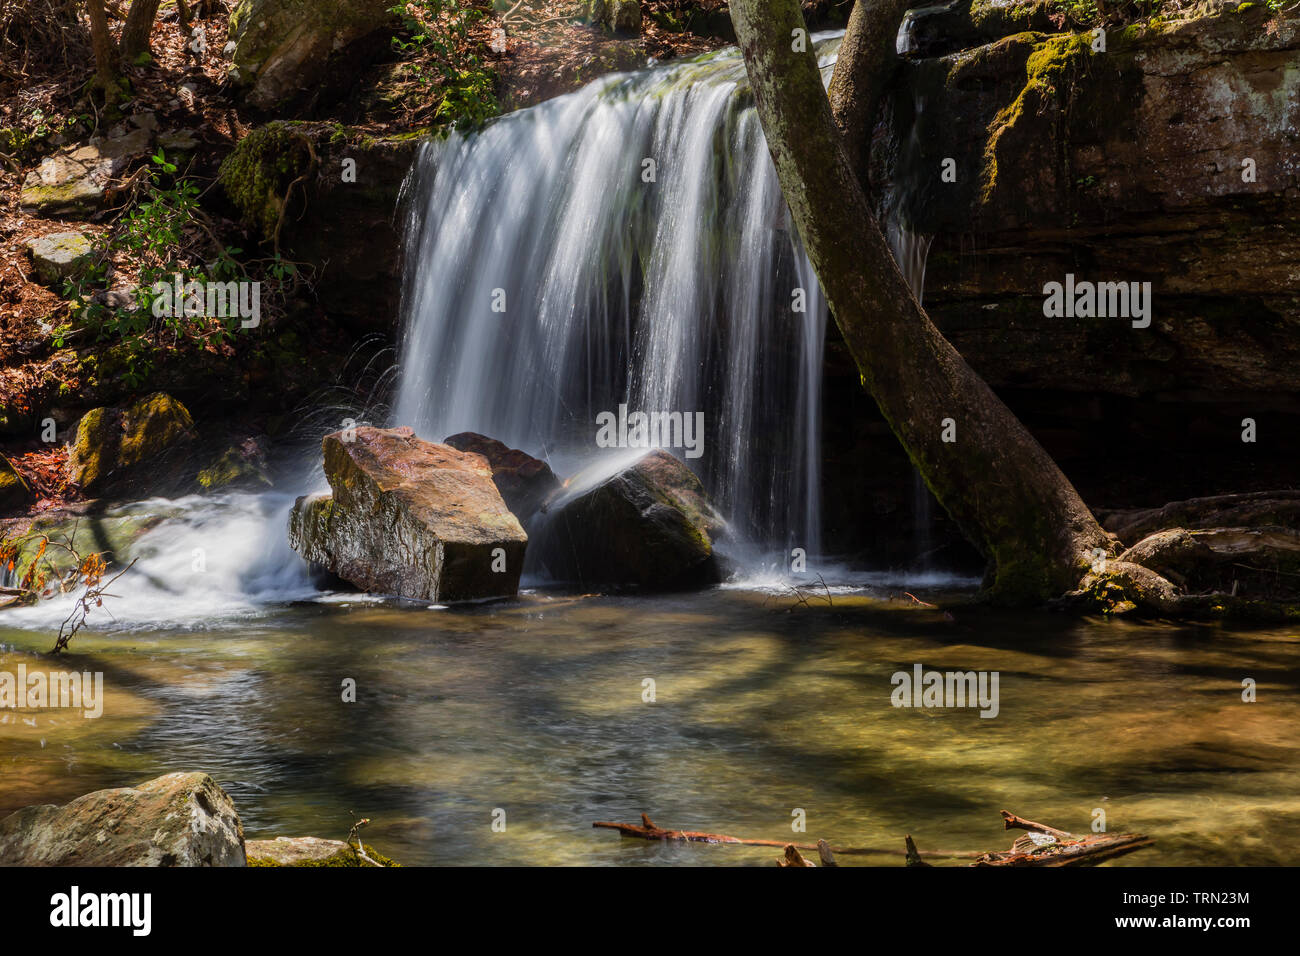 Laurel Falls in Little River Canyon National Preserve, Alabama Stock Photo